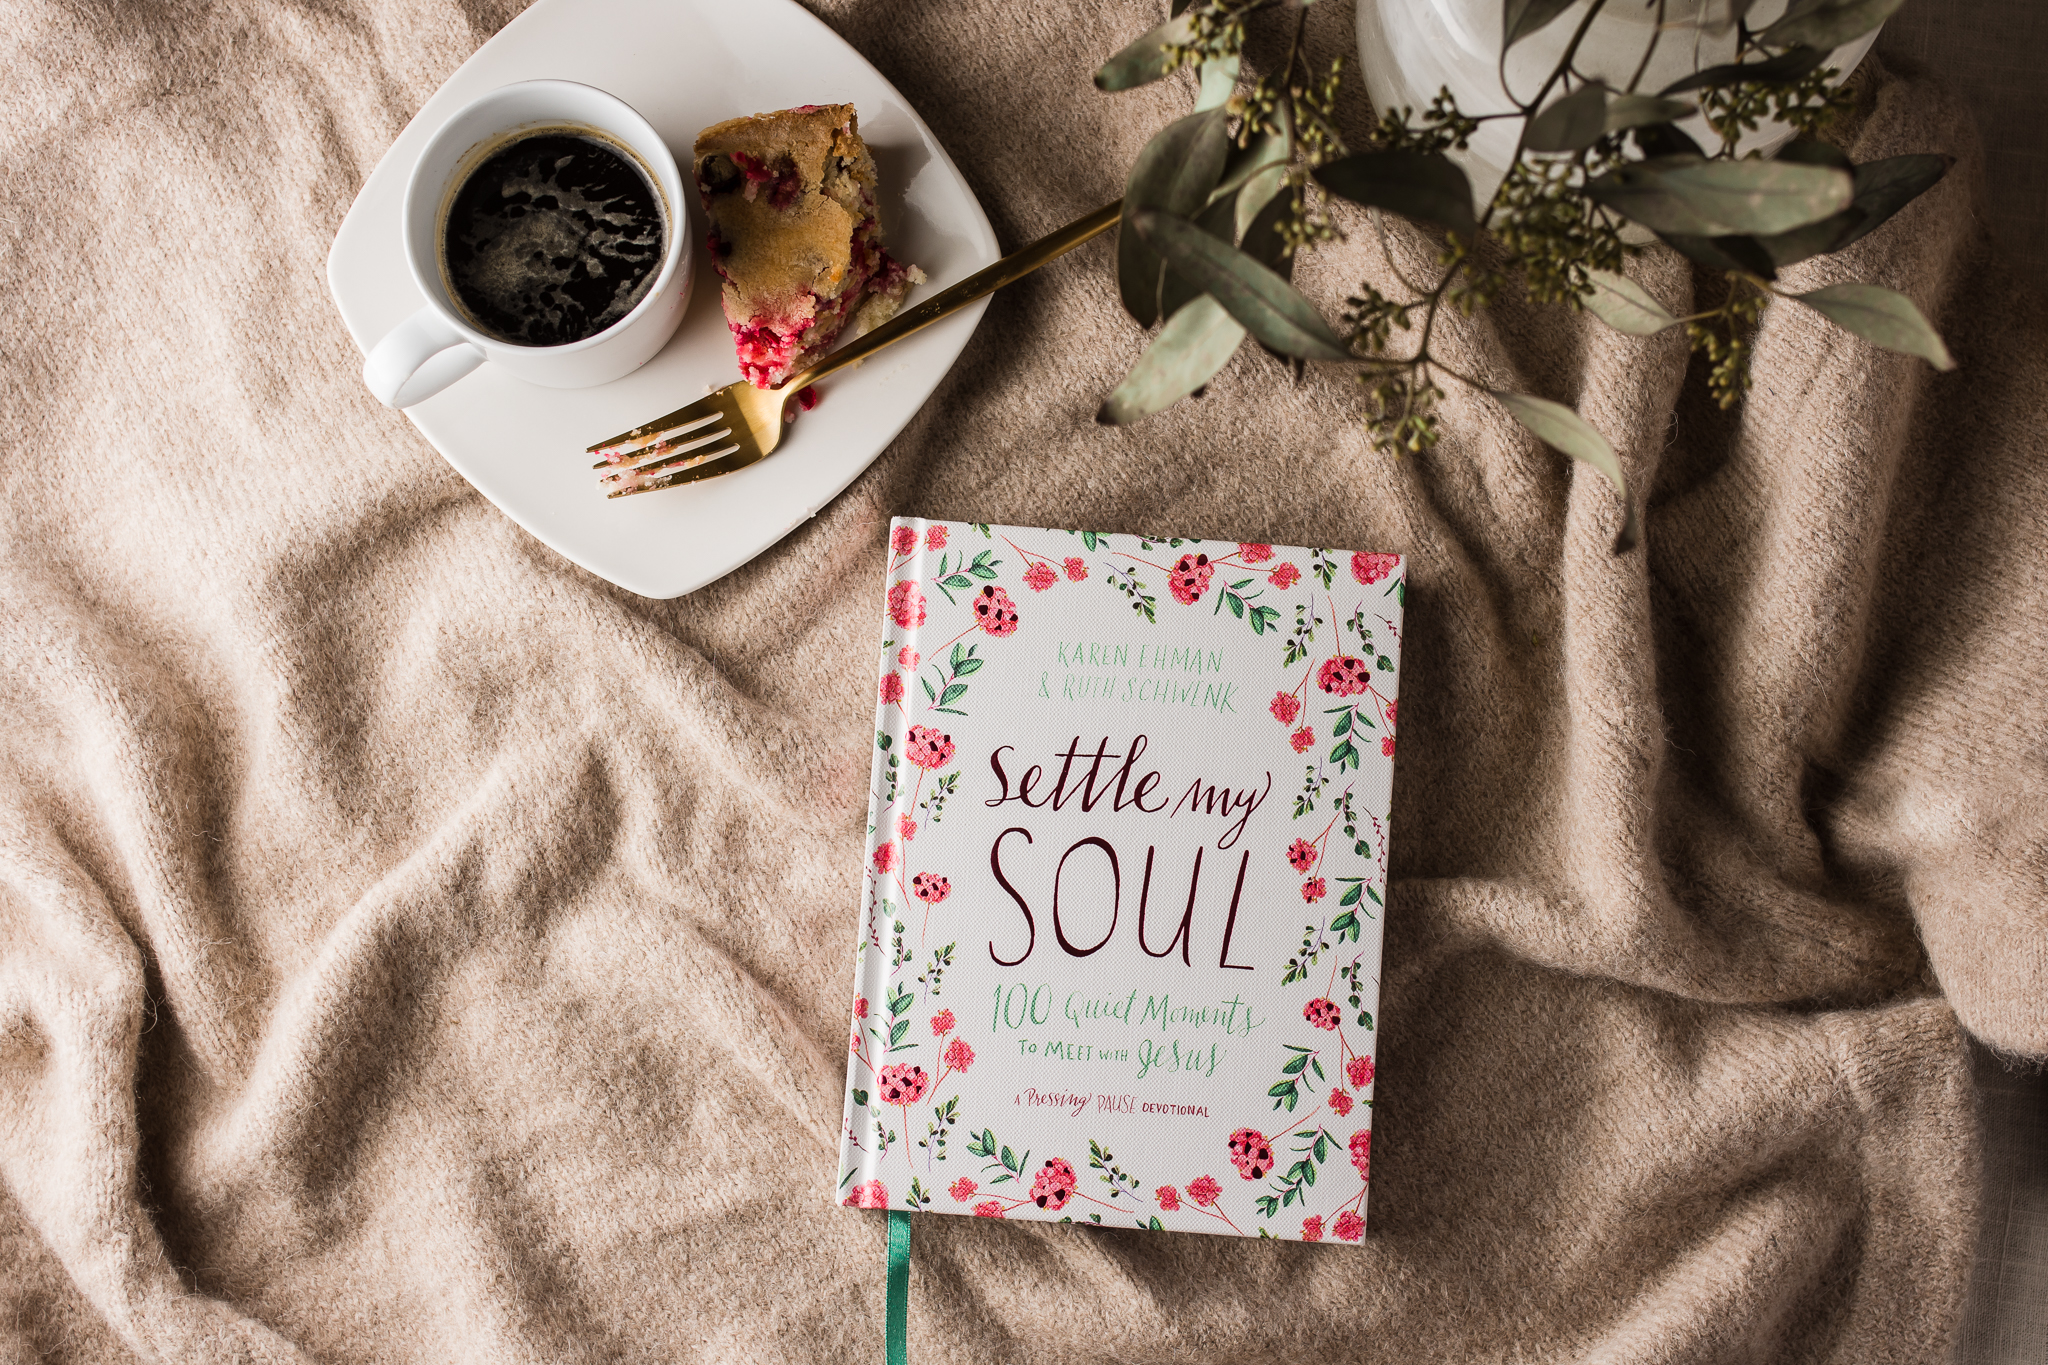 Have you ever wondered how to break a cycle of deep exhaustion? How do you handle caring for yourself when there are so many pressing needs all around you?  This is the encouragement you need and the plan for your heart when things don't feel okay.